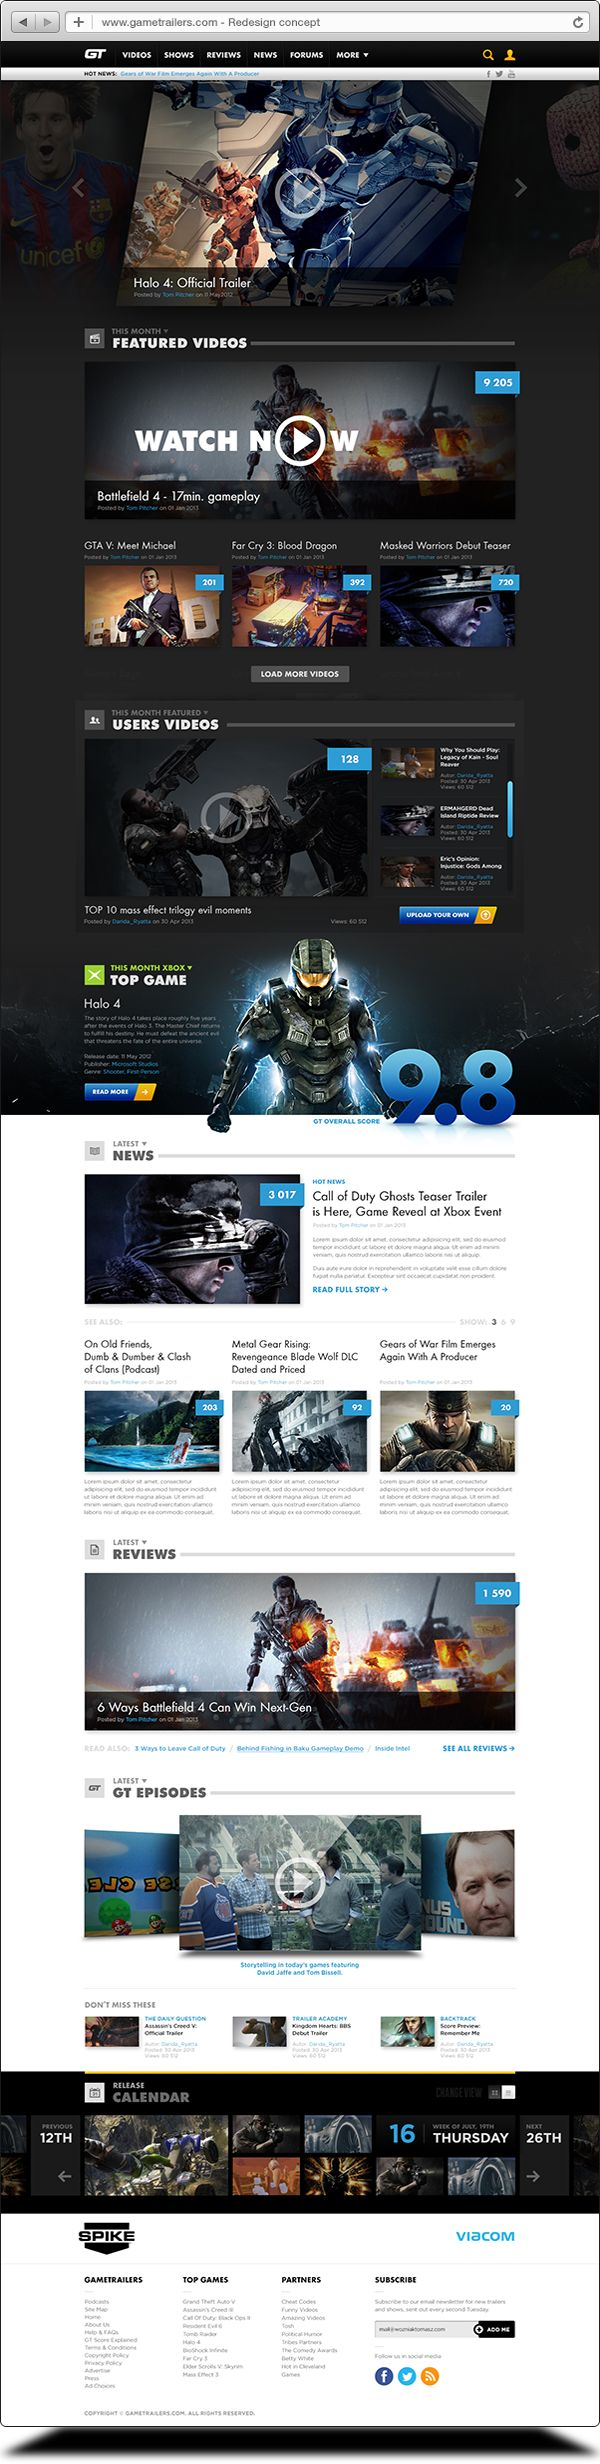 Gametrailers redesign concept by Tom Wozniak